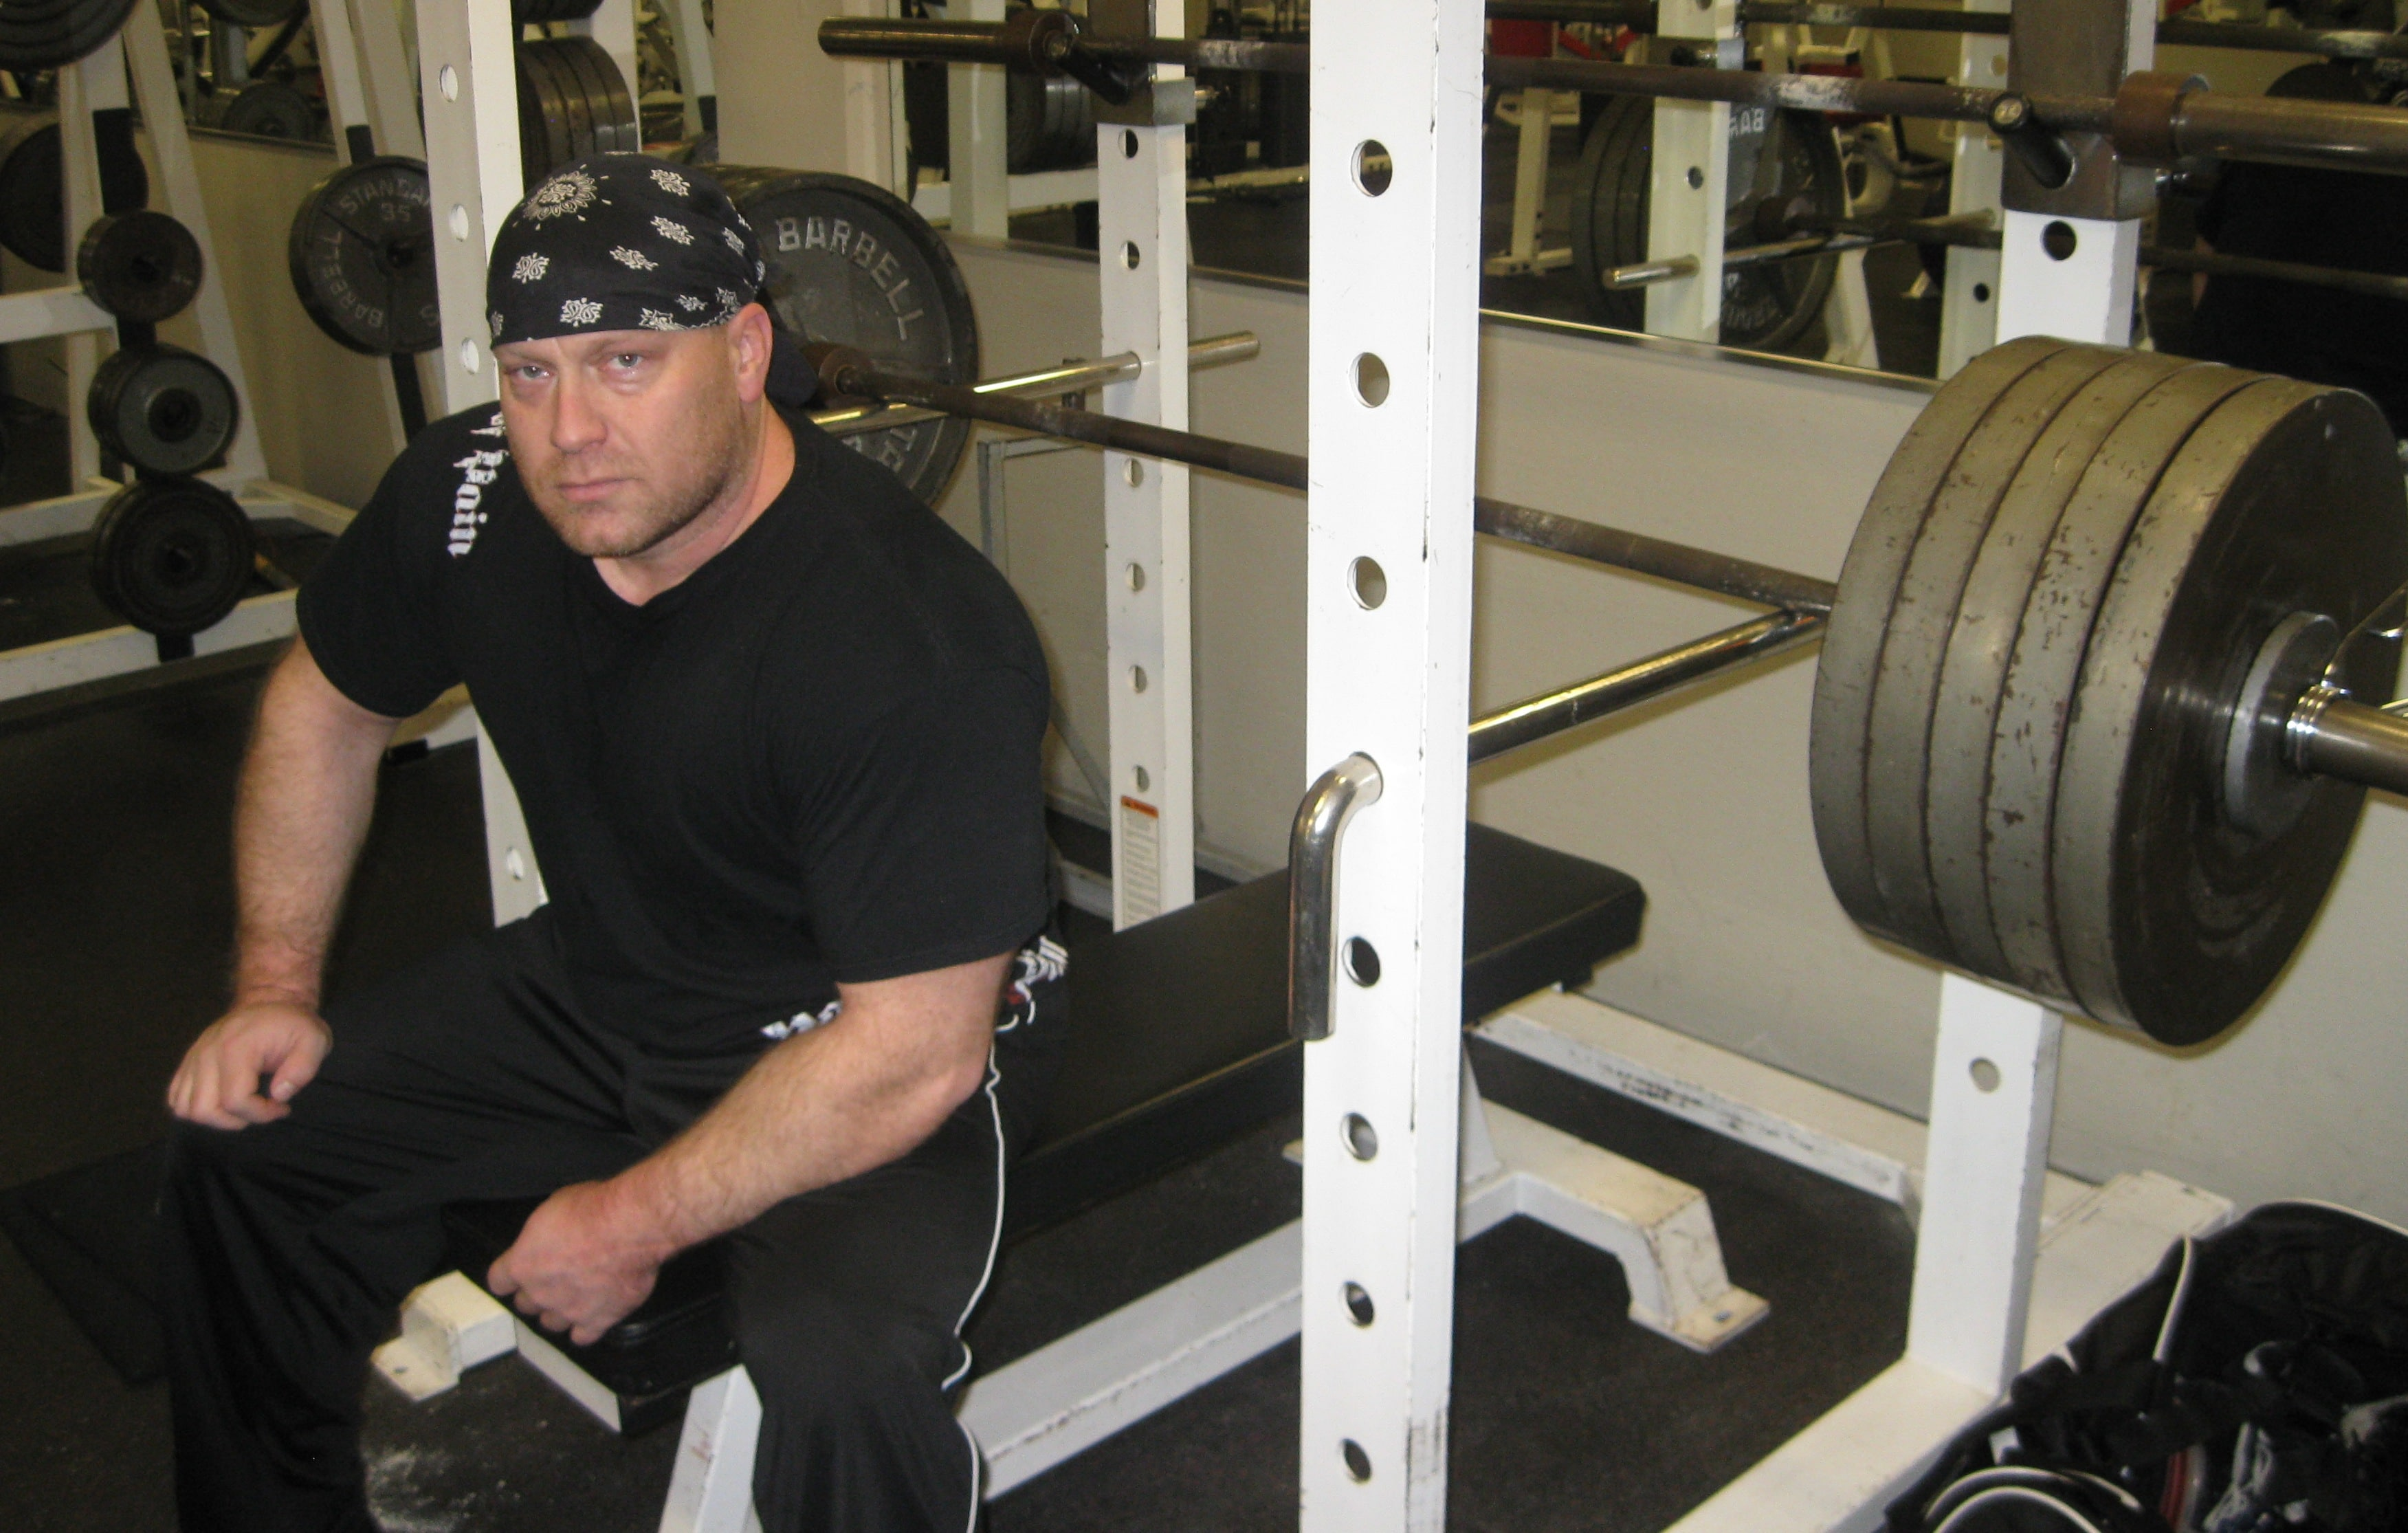 Bench Press Overloading Rack Presses Vs Board Presses Brute Force